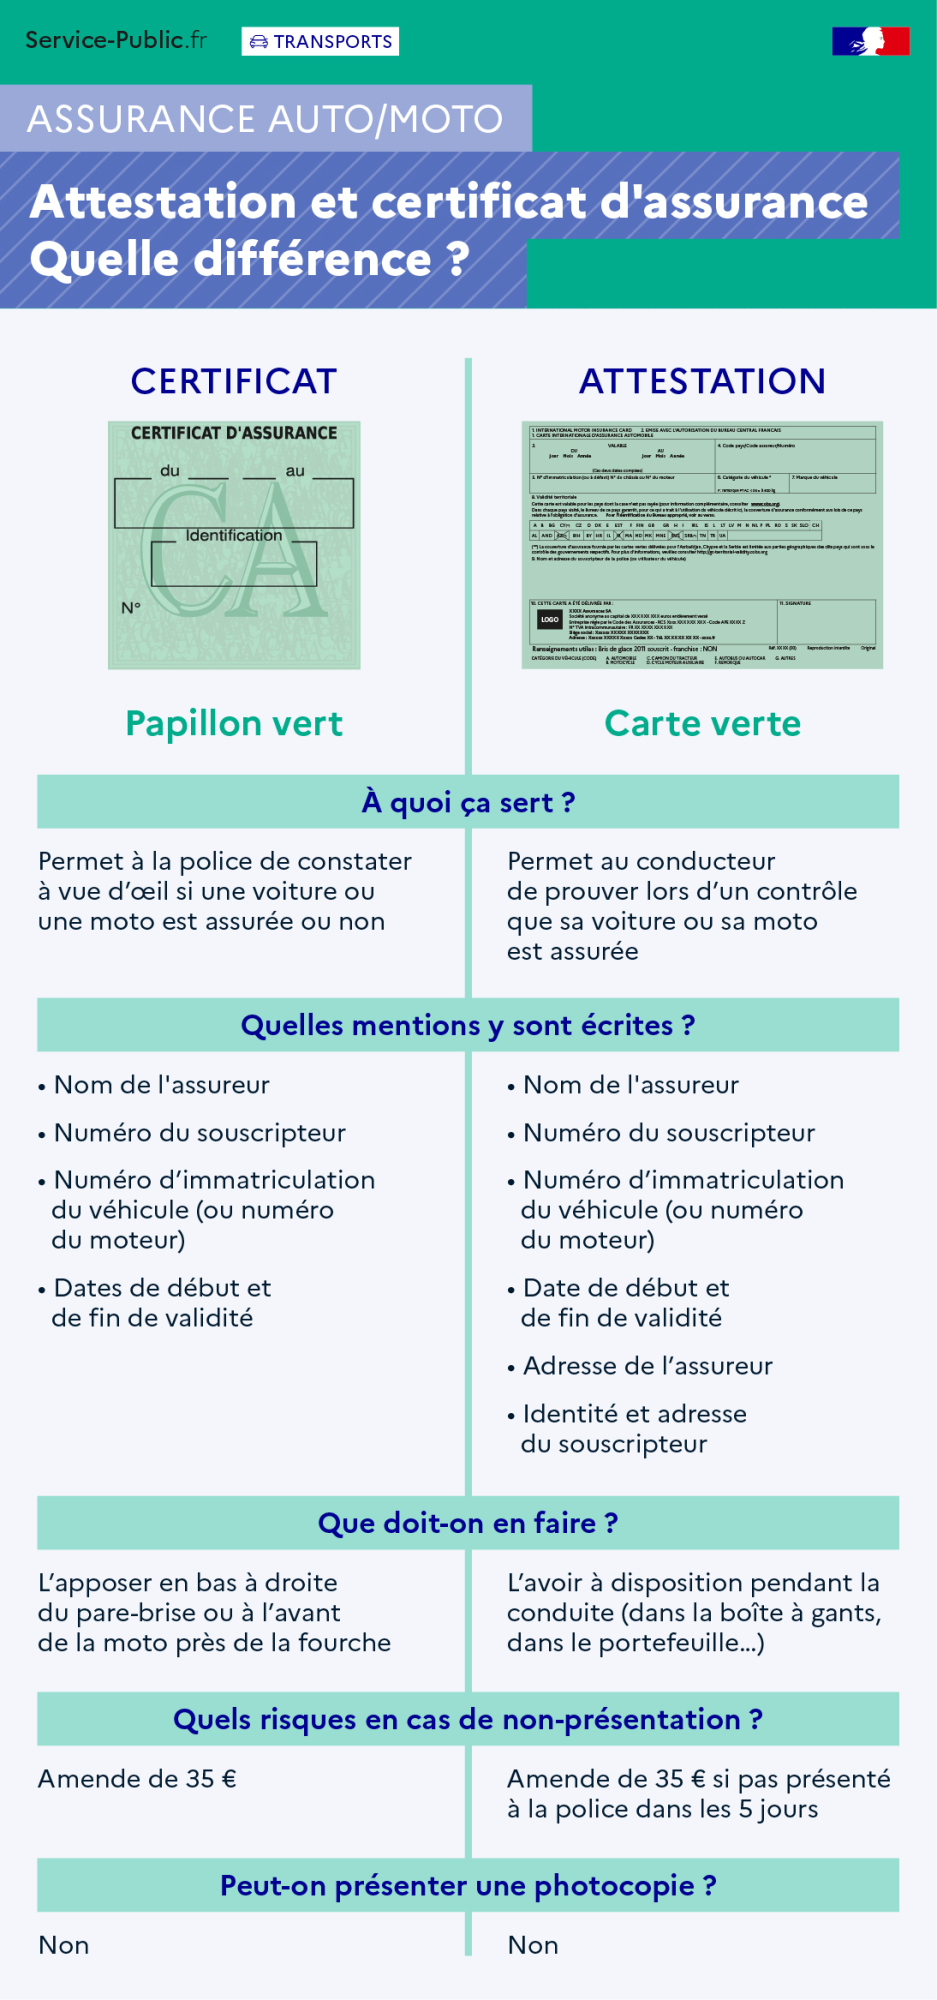 Rôle du certificat d'assurance et de l'attestation d'assurance, mentions obligatoires et sanction en cas d'absence des documents